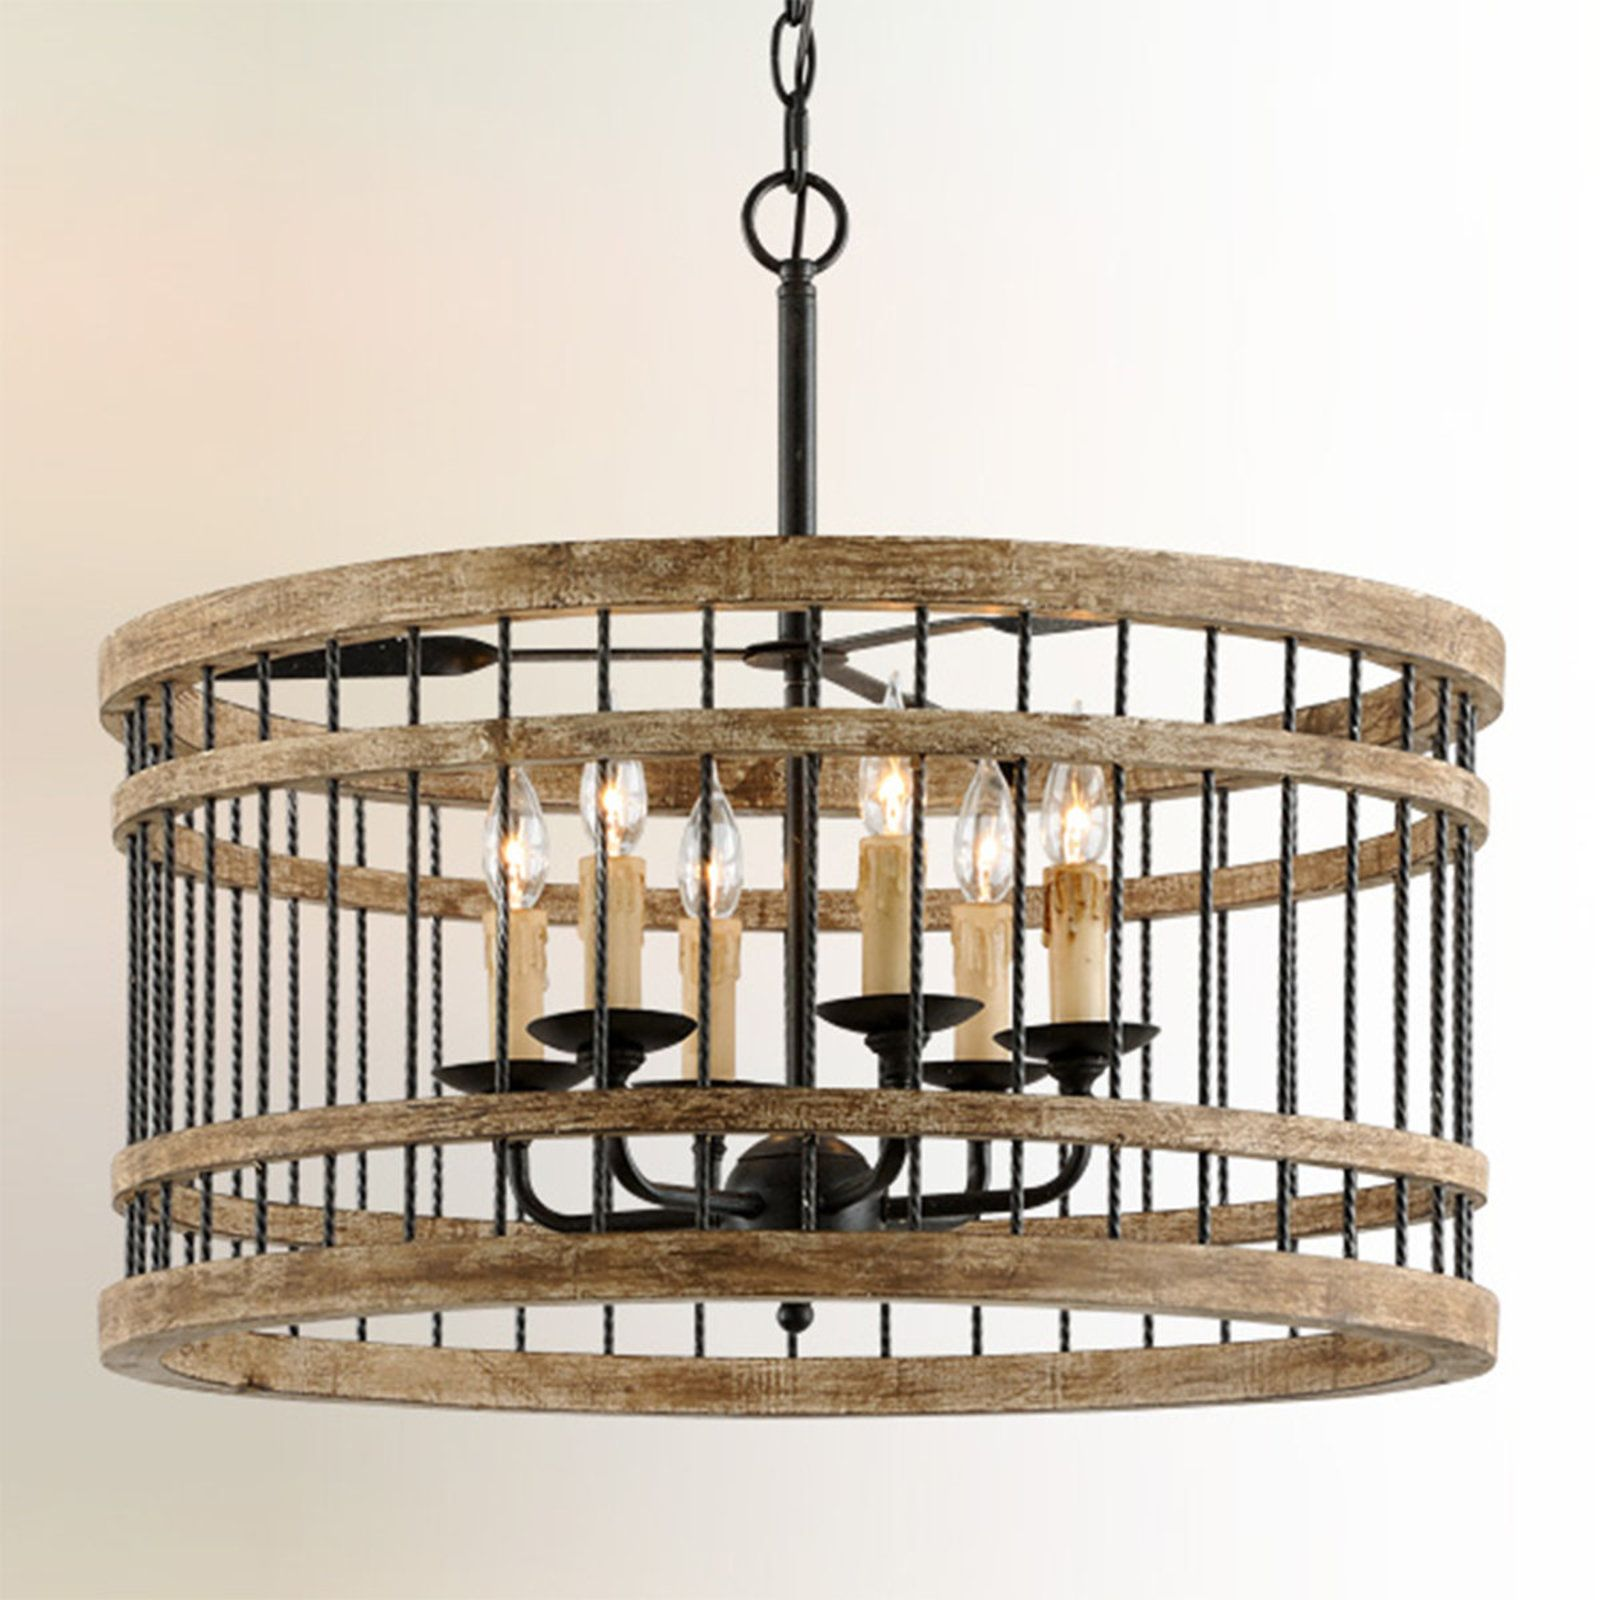 Twisted Country Cage Chandelier Wood Pendant Light Dining Pendant Troy Lighting